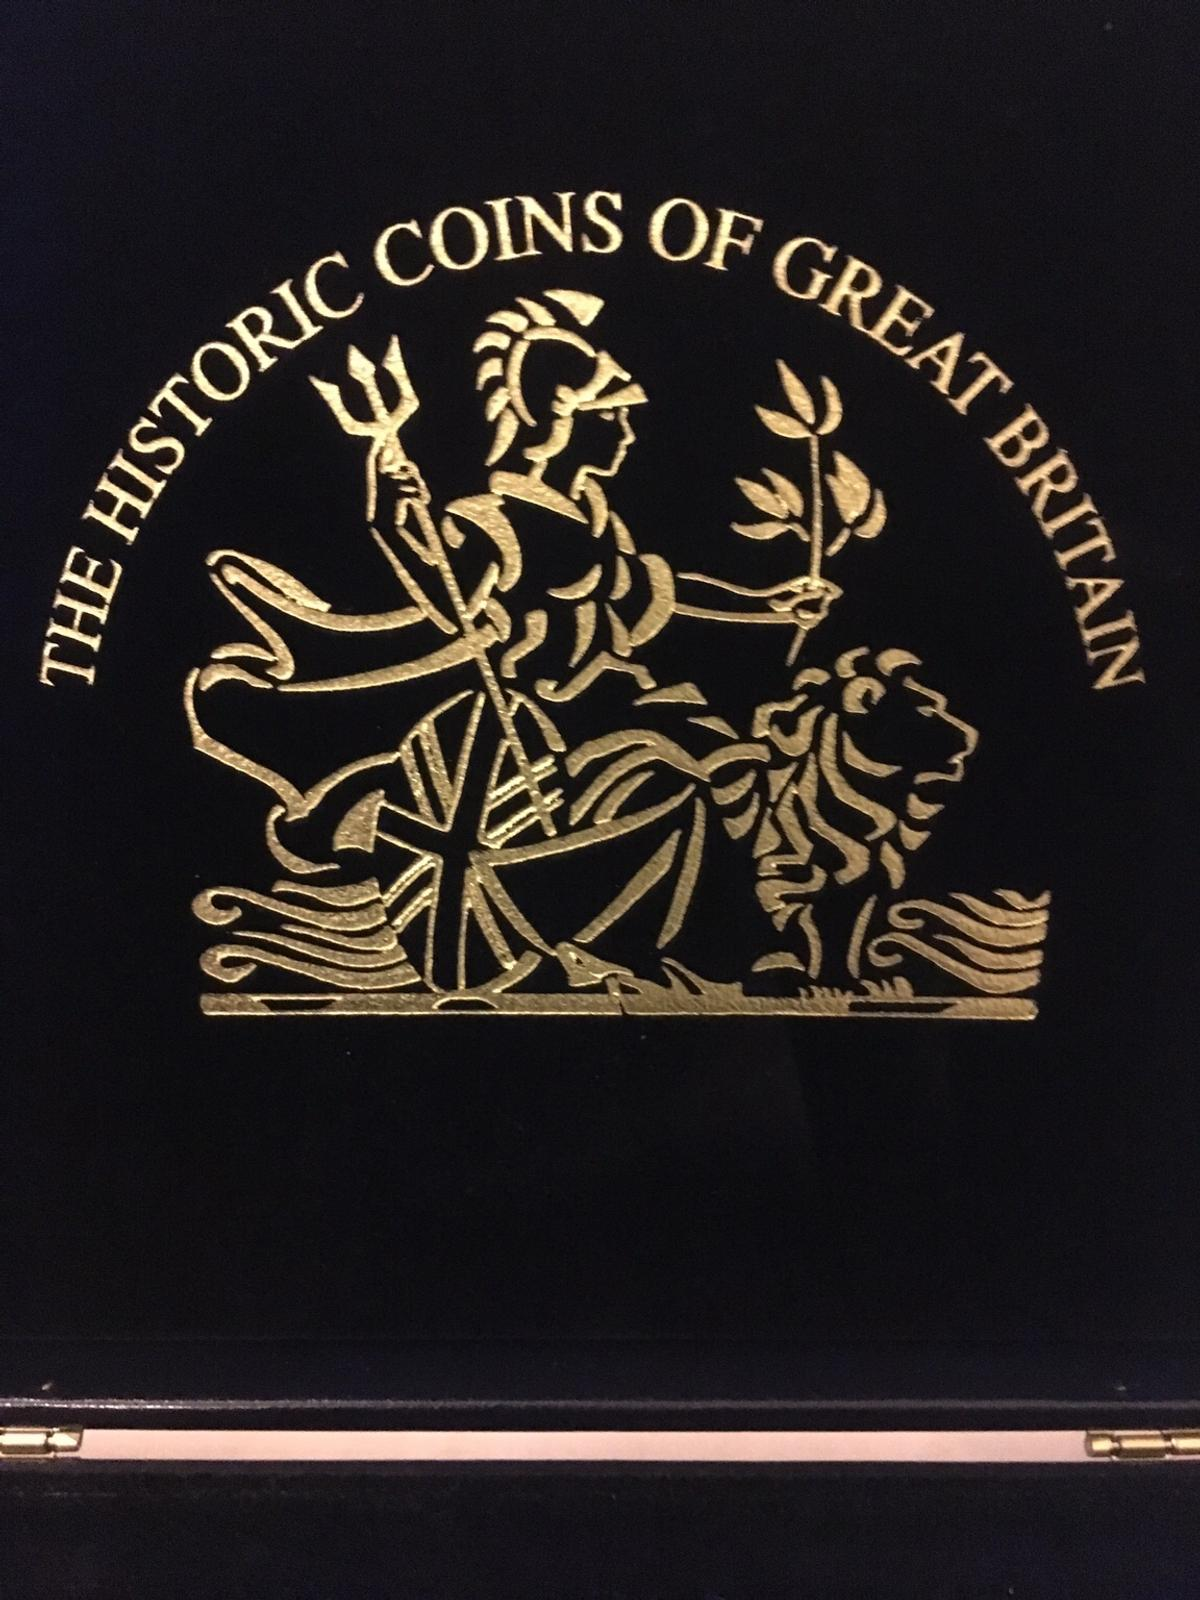 Used historic coins of Britain collection box in excellent condition. Collection from IP327GX can post for a fee. Tel.No.07808243064. £12.